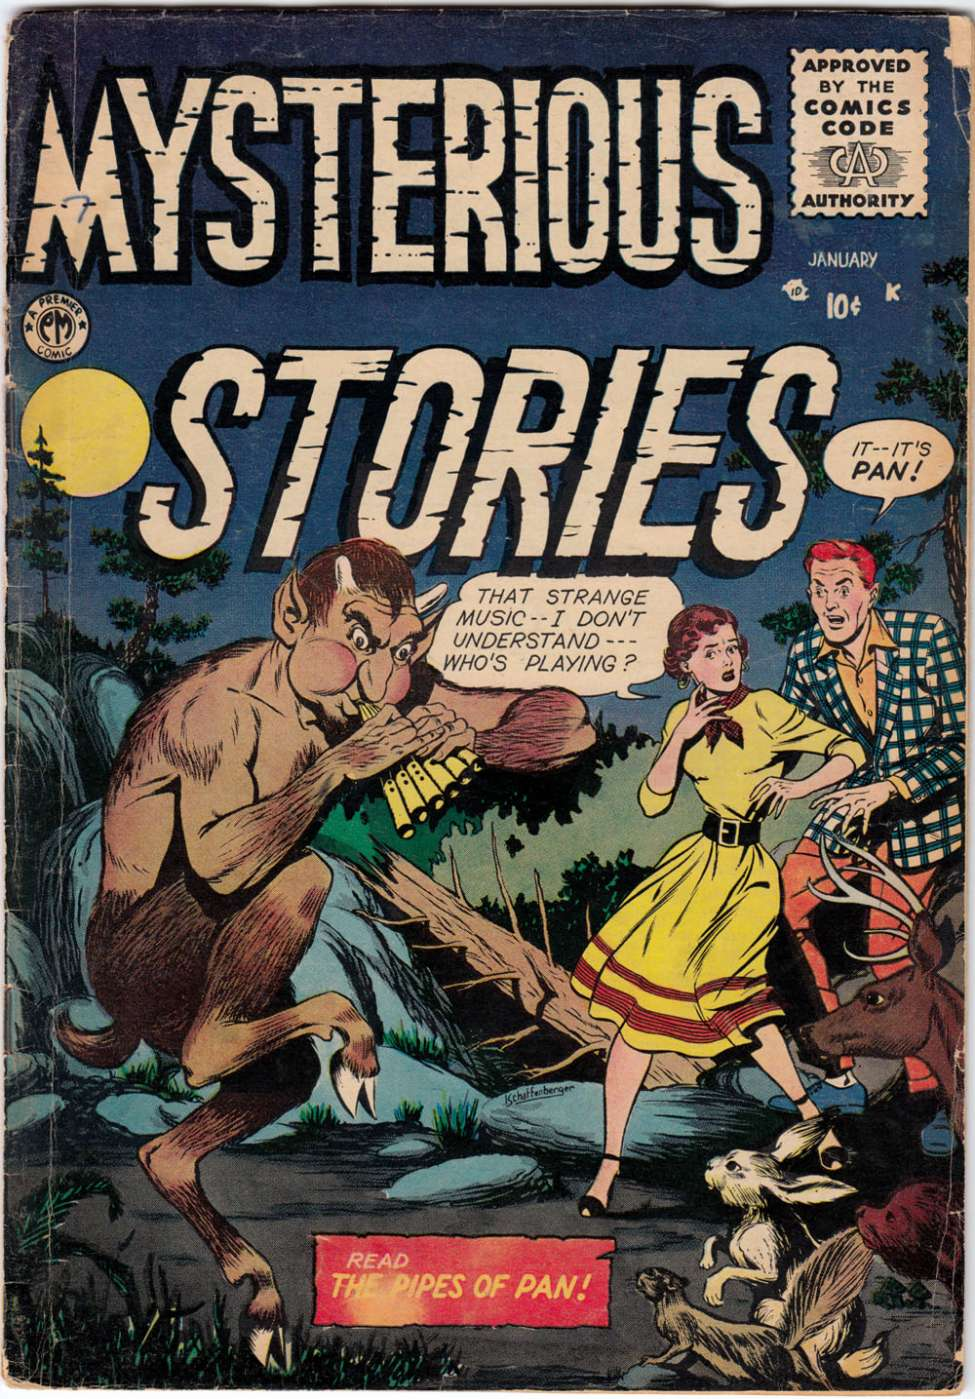 Comic Book Cover For Mysterious Stories #7